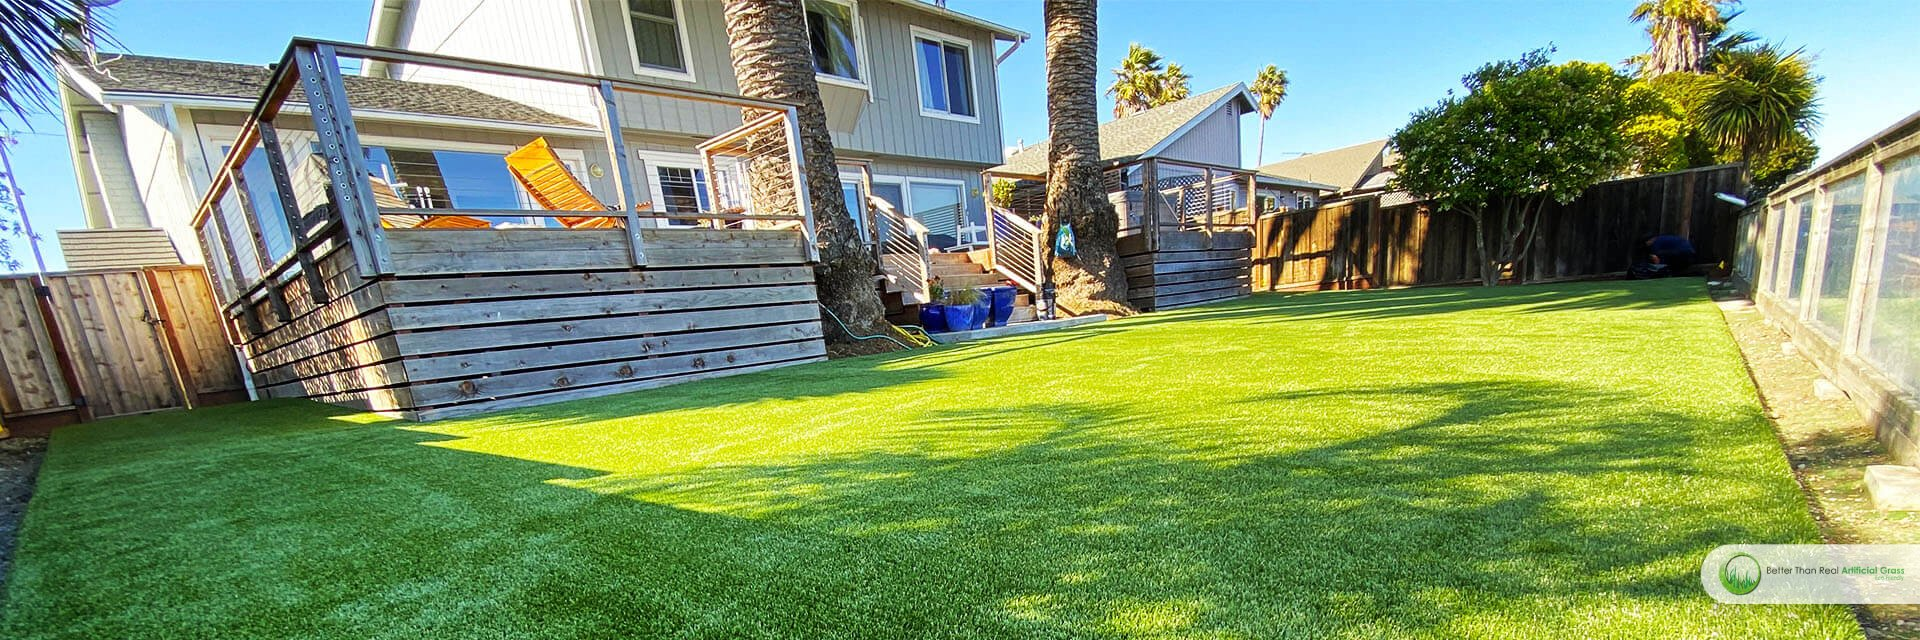 Artificial grass installation Seaside project